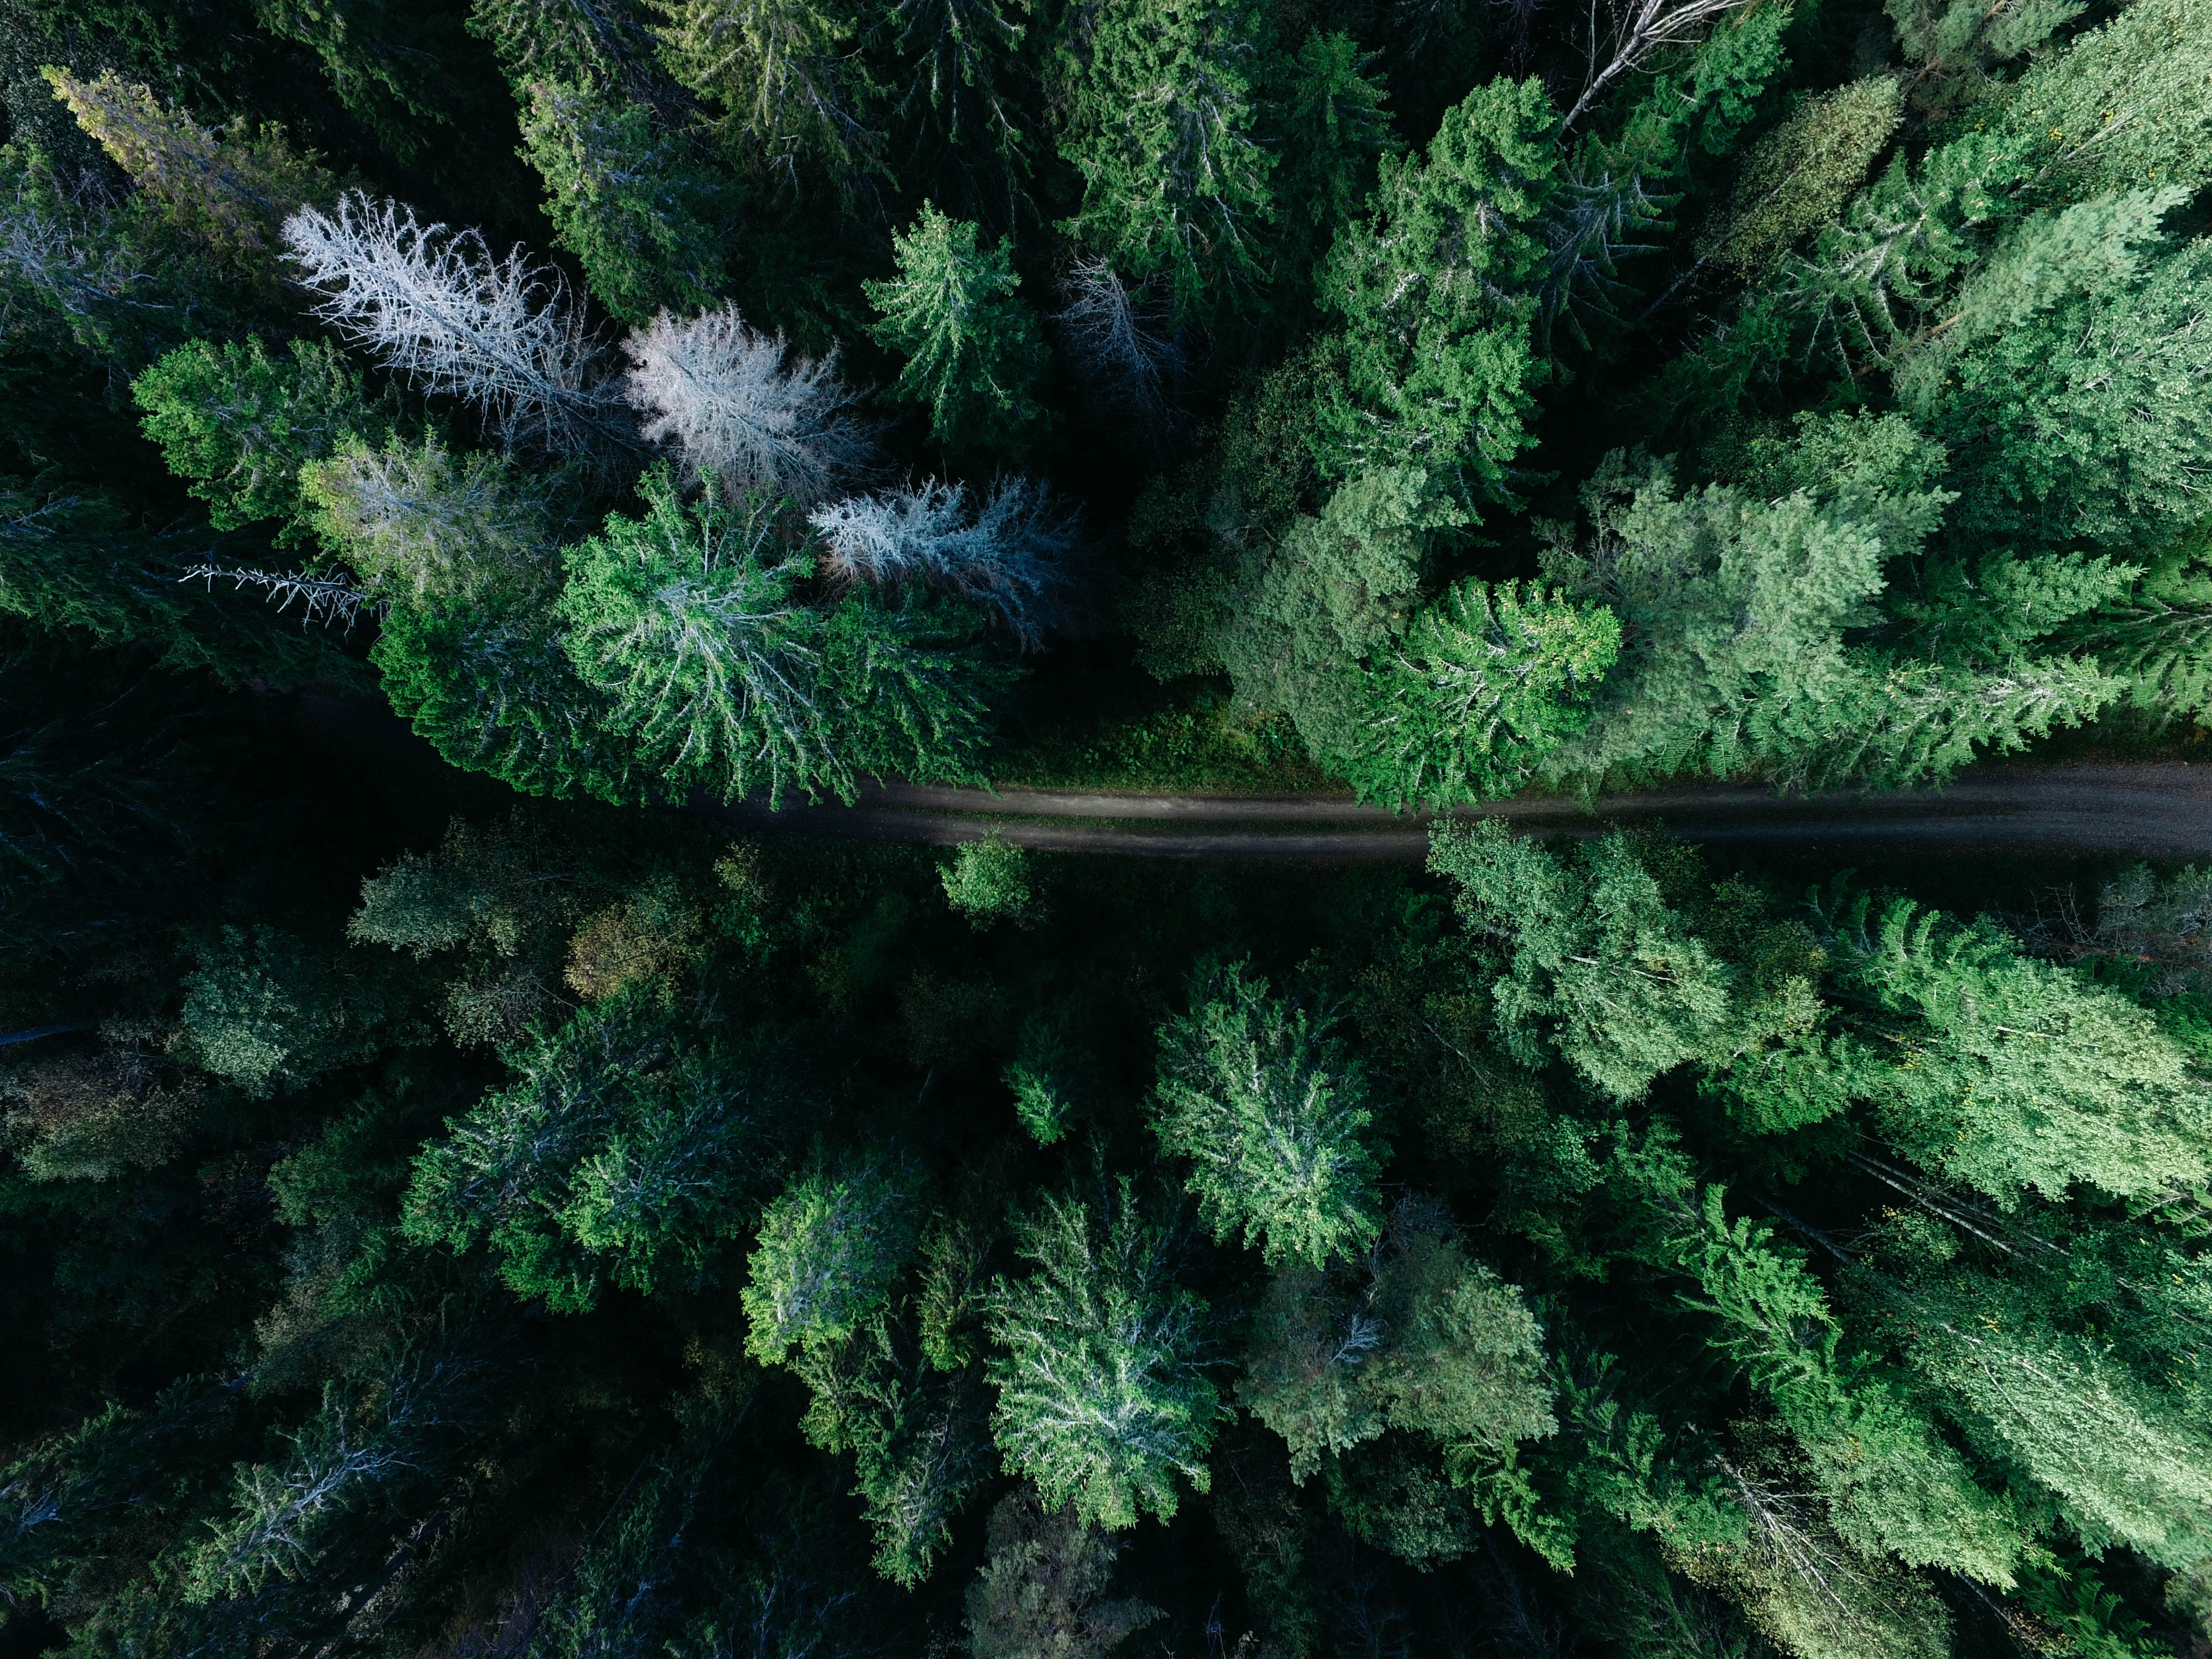 A drone shot of a dirt path through an evergreen forest in Gävle